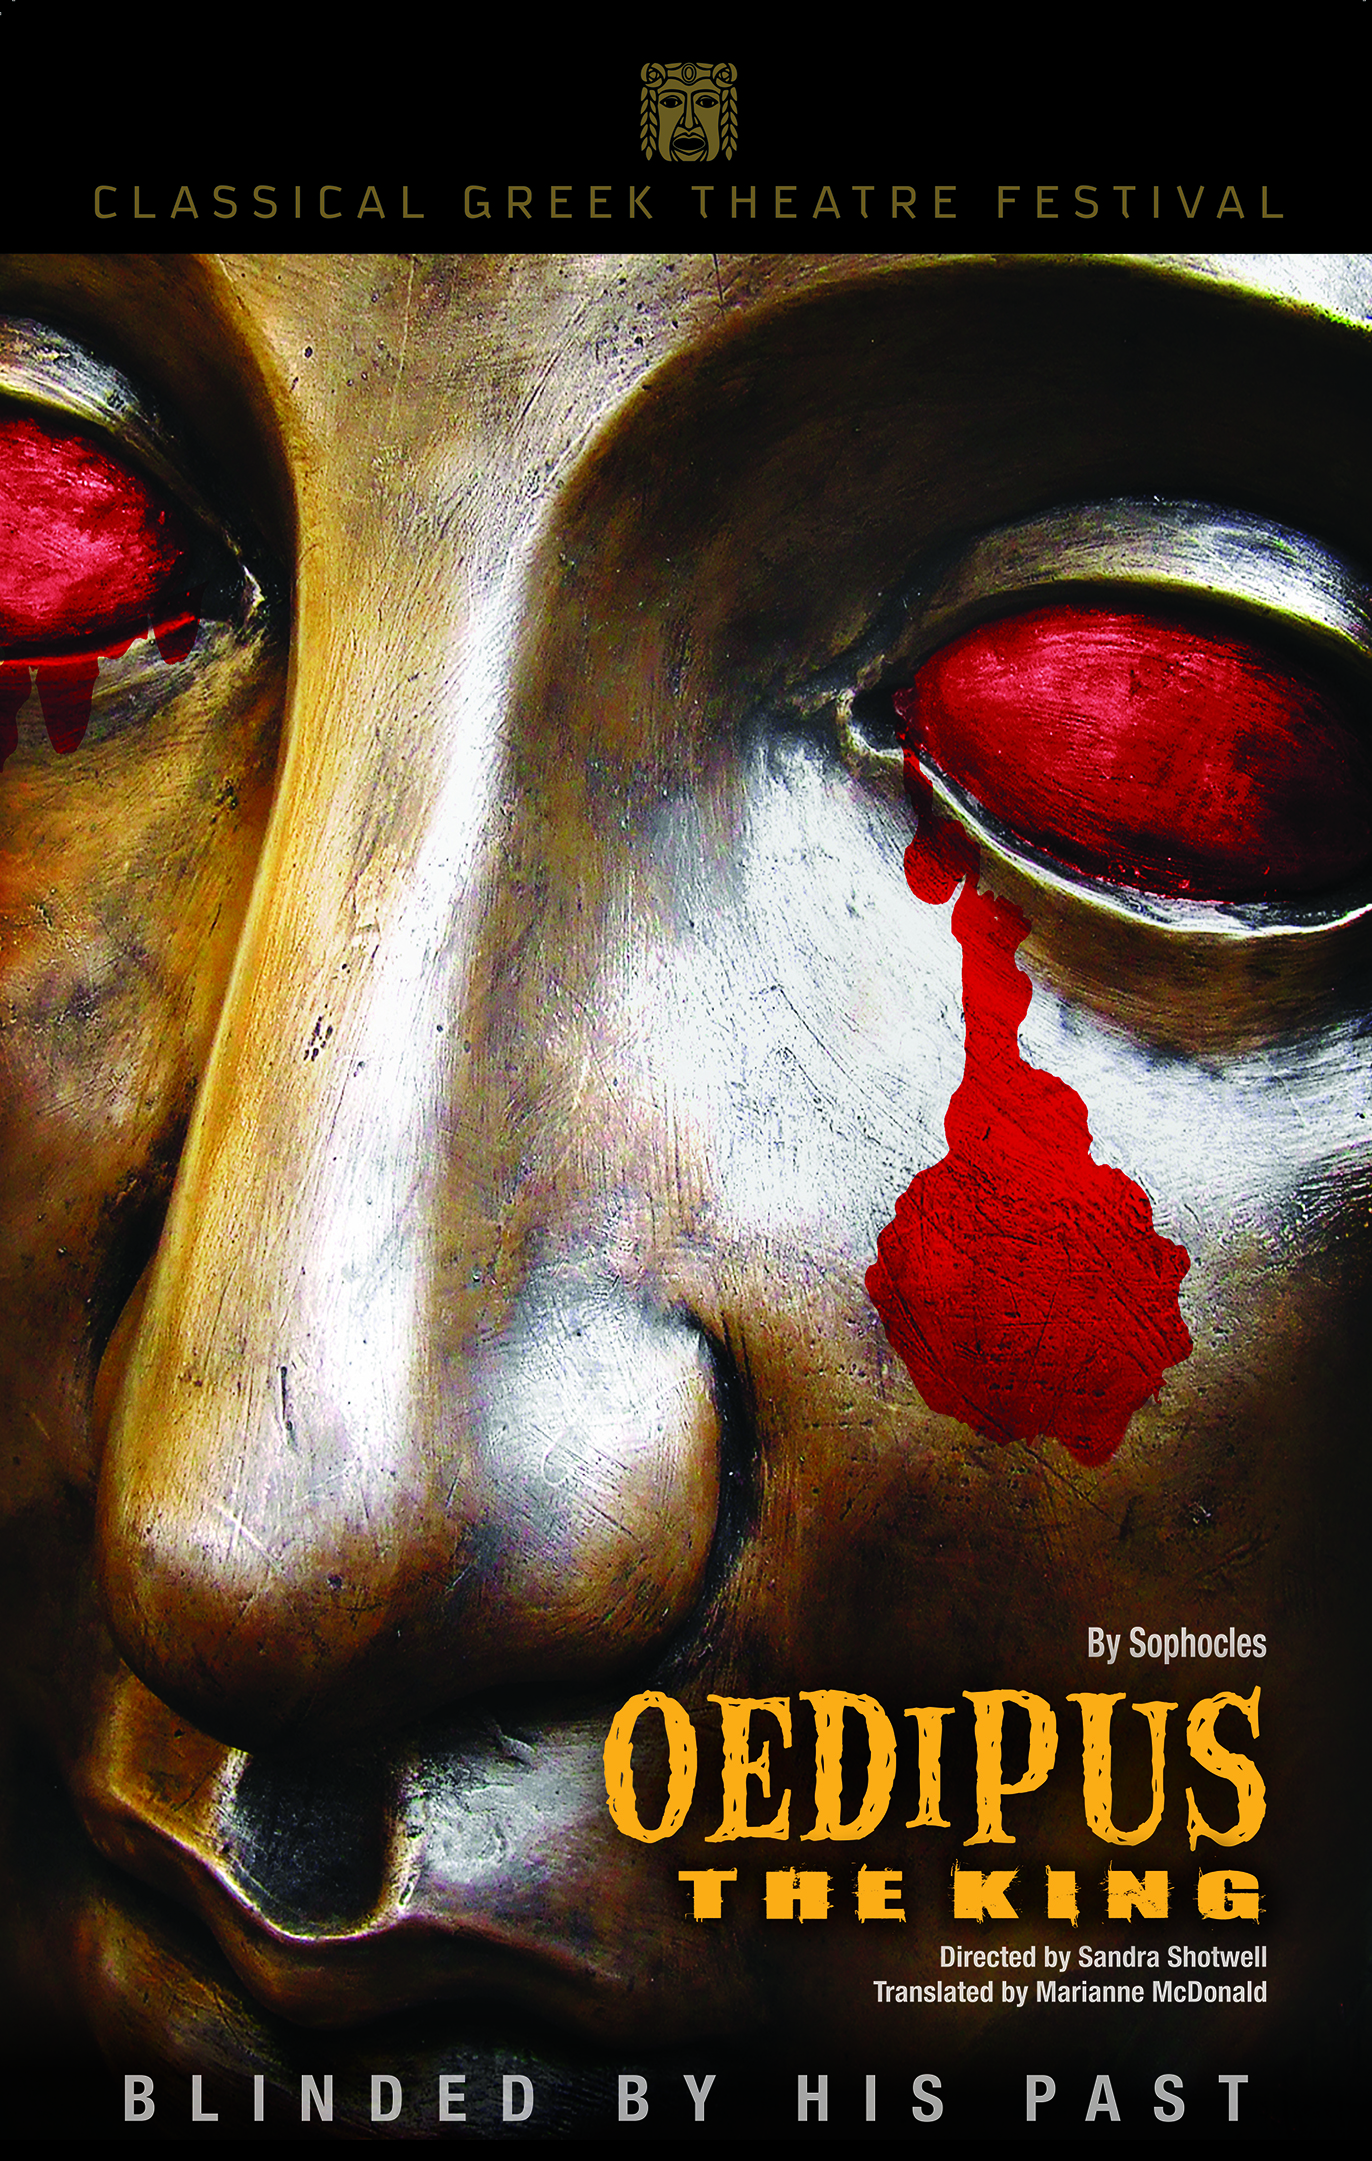 When Was Oedipus The King Written